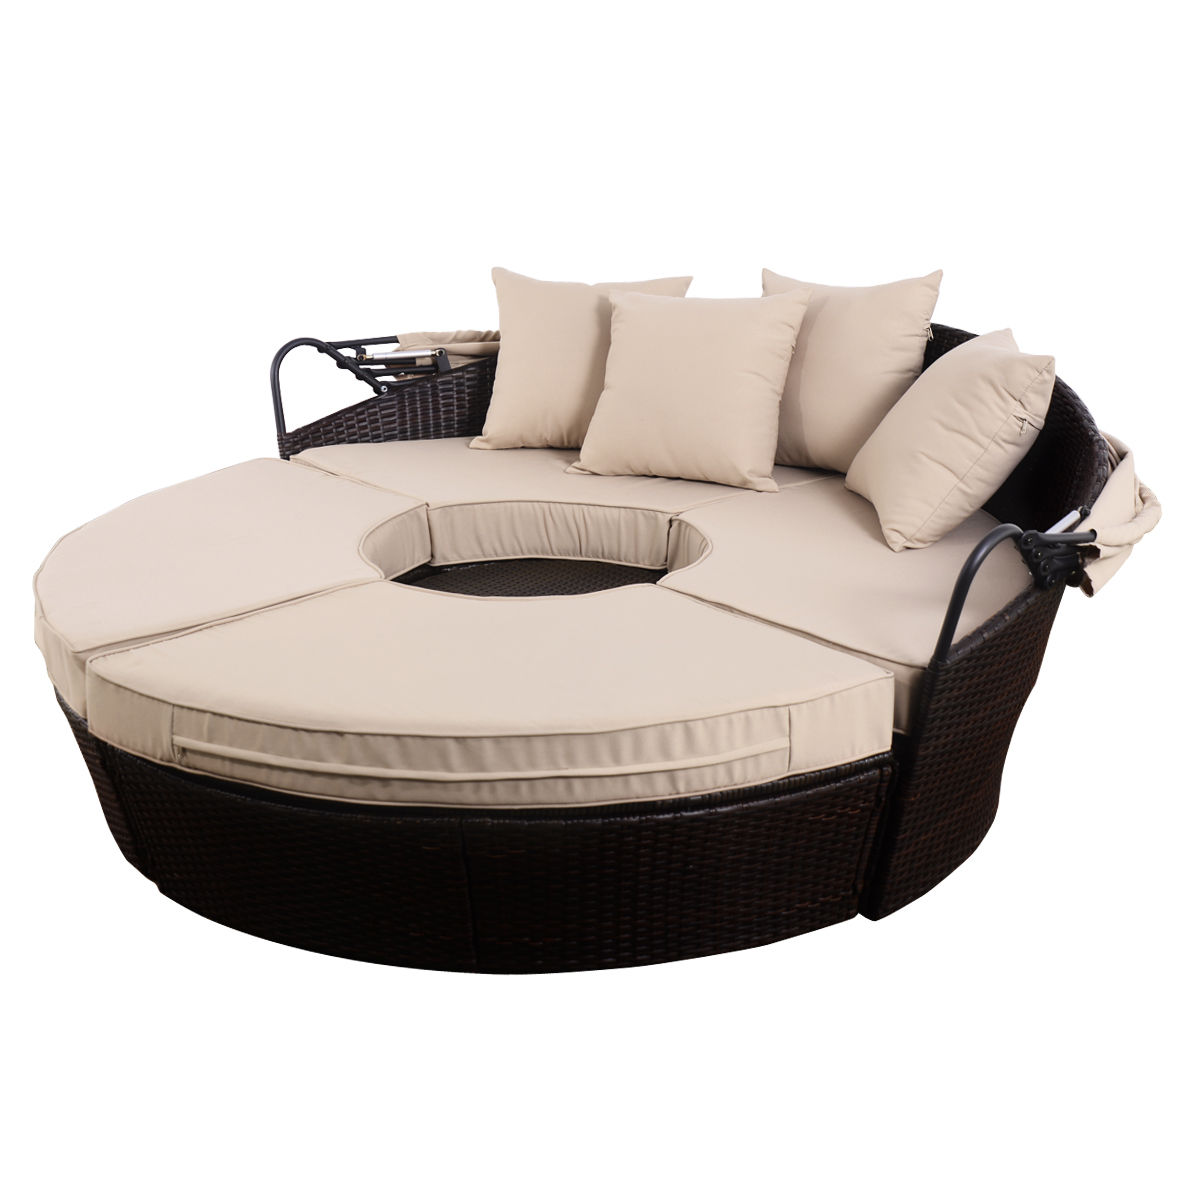 Outdoor Daybed Patio Sofa Furniture Brown